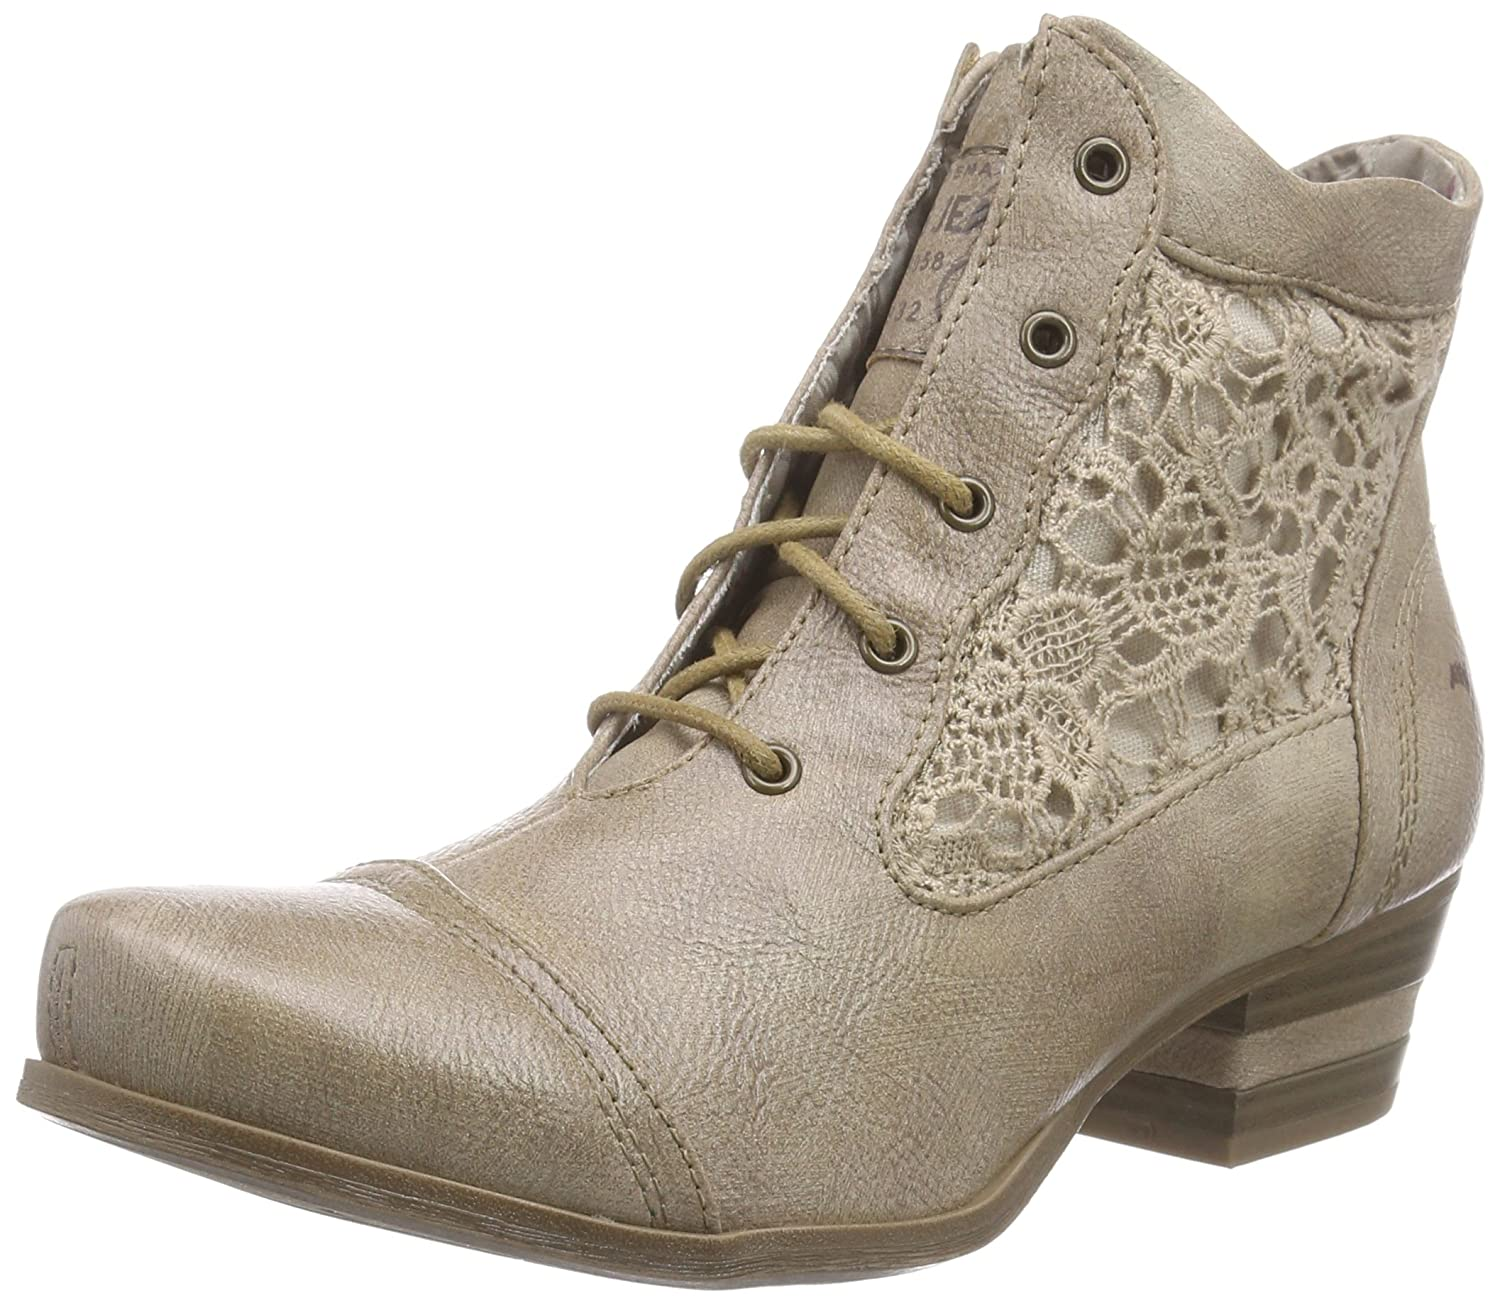 Mustang 1187-501, 1187-501, Botines Femme B07DK1BSL8 Marron 19187 (Taupe) c746aa8 - latesttechnology.space